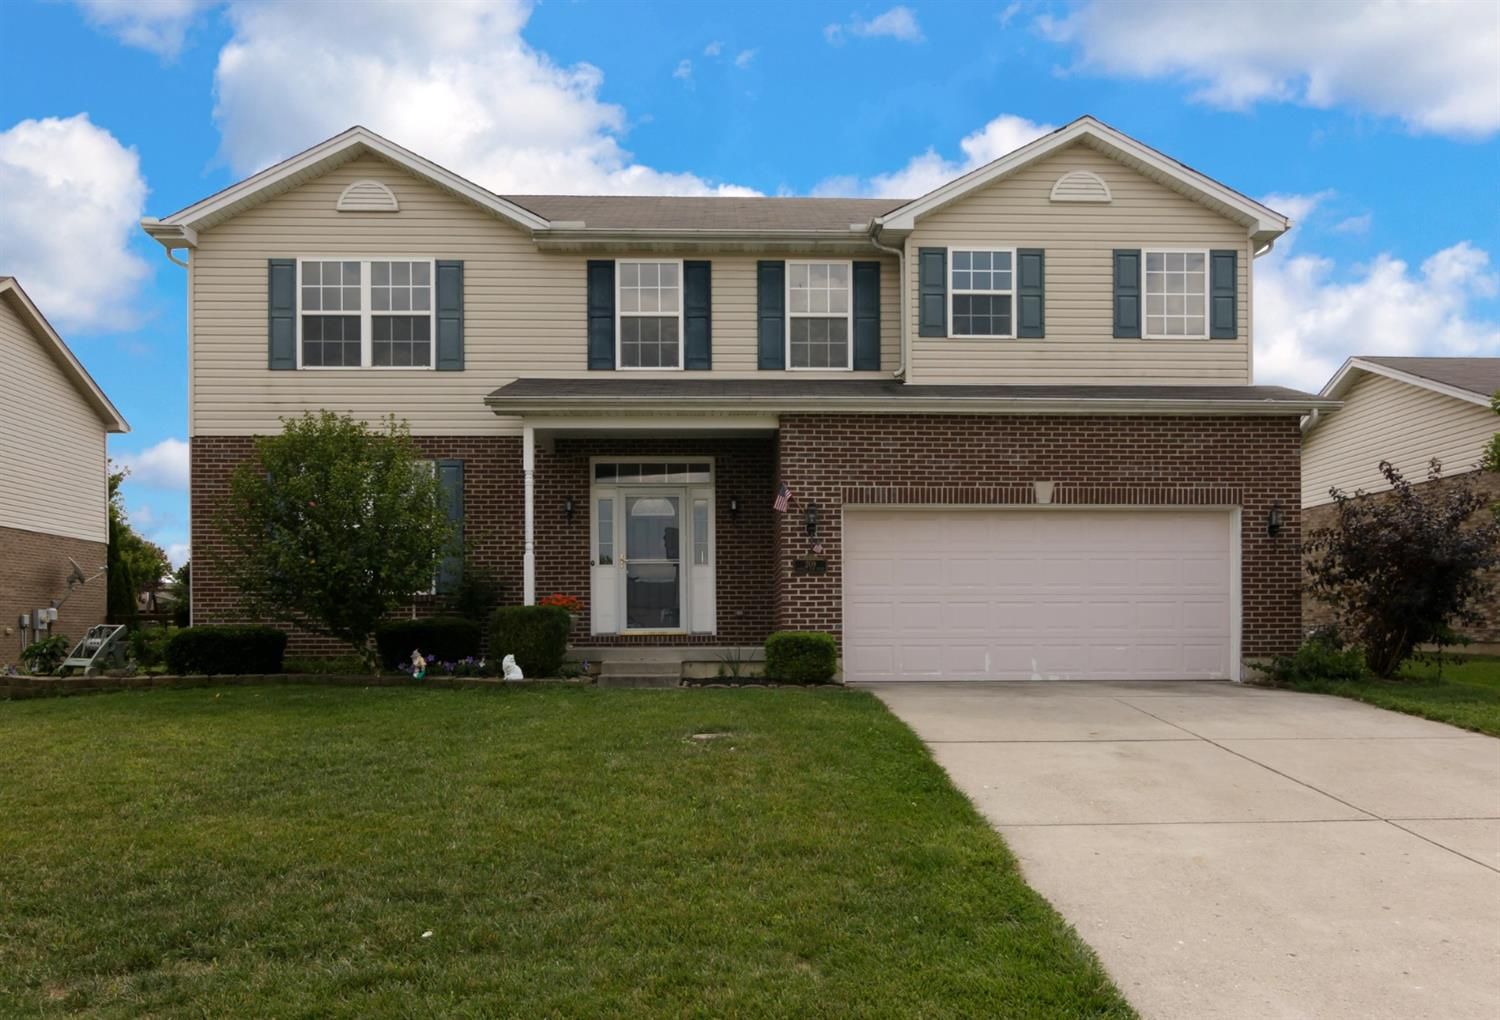 Property for sale at 209 Scarlet Oak Drive, Monroe,  OH 45050